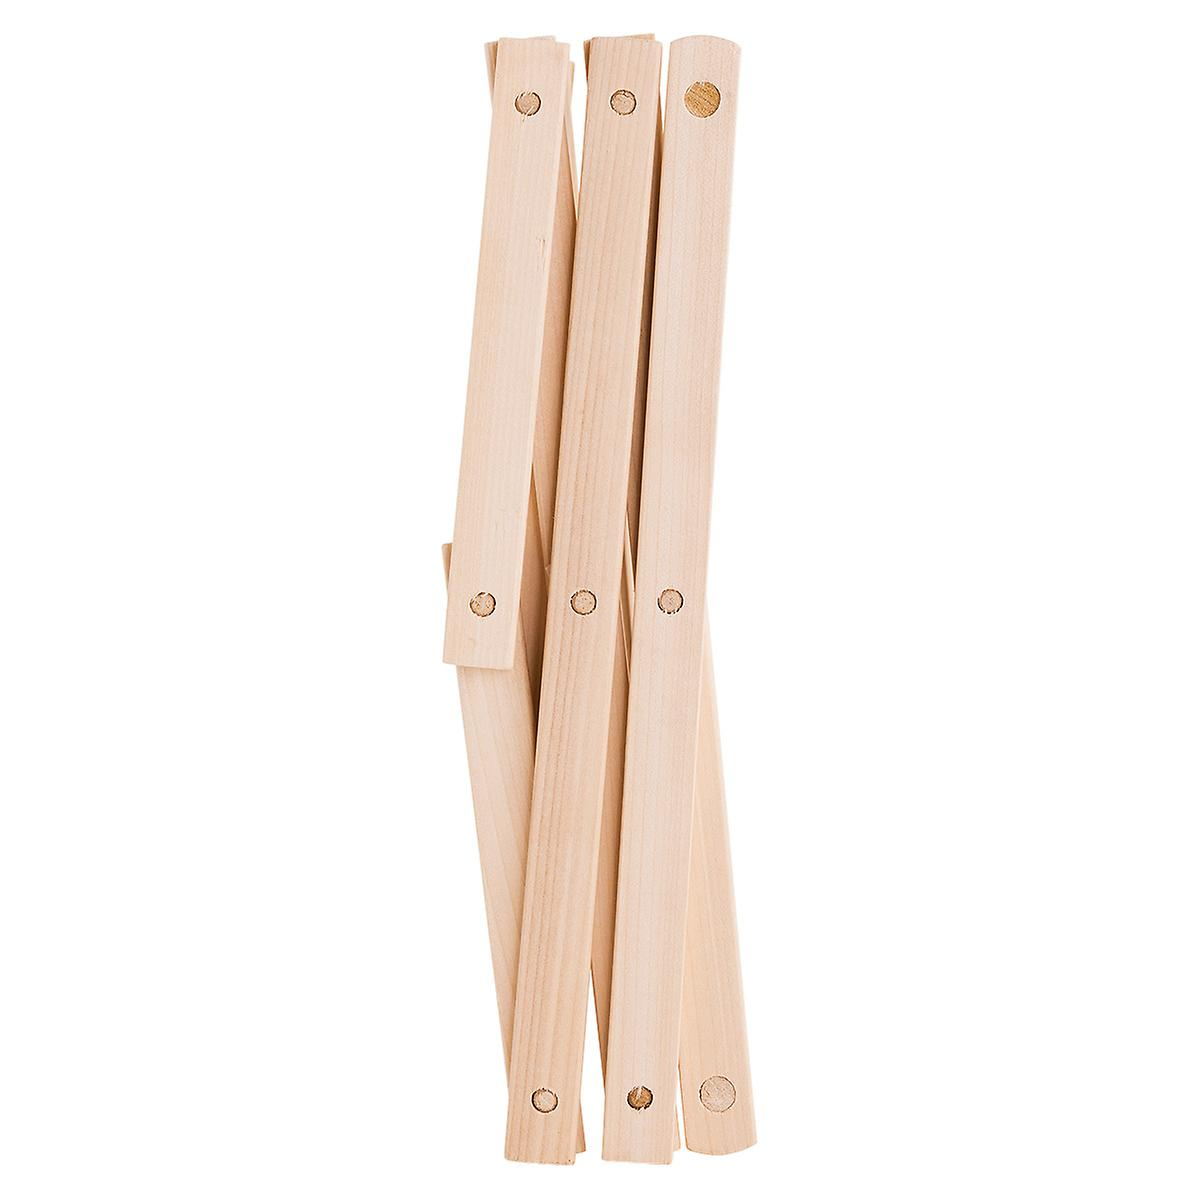 9 Dowel Wooden Wall Mounted Amp Floor Clothes Drying Rack